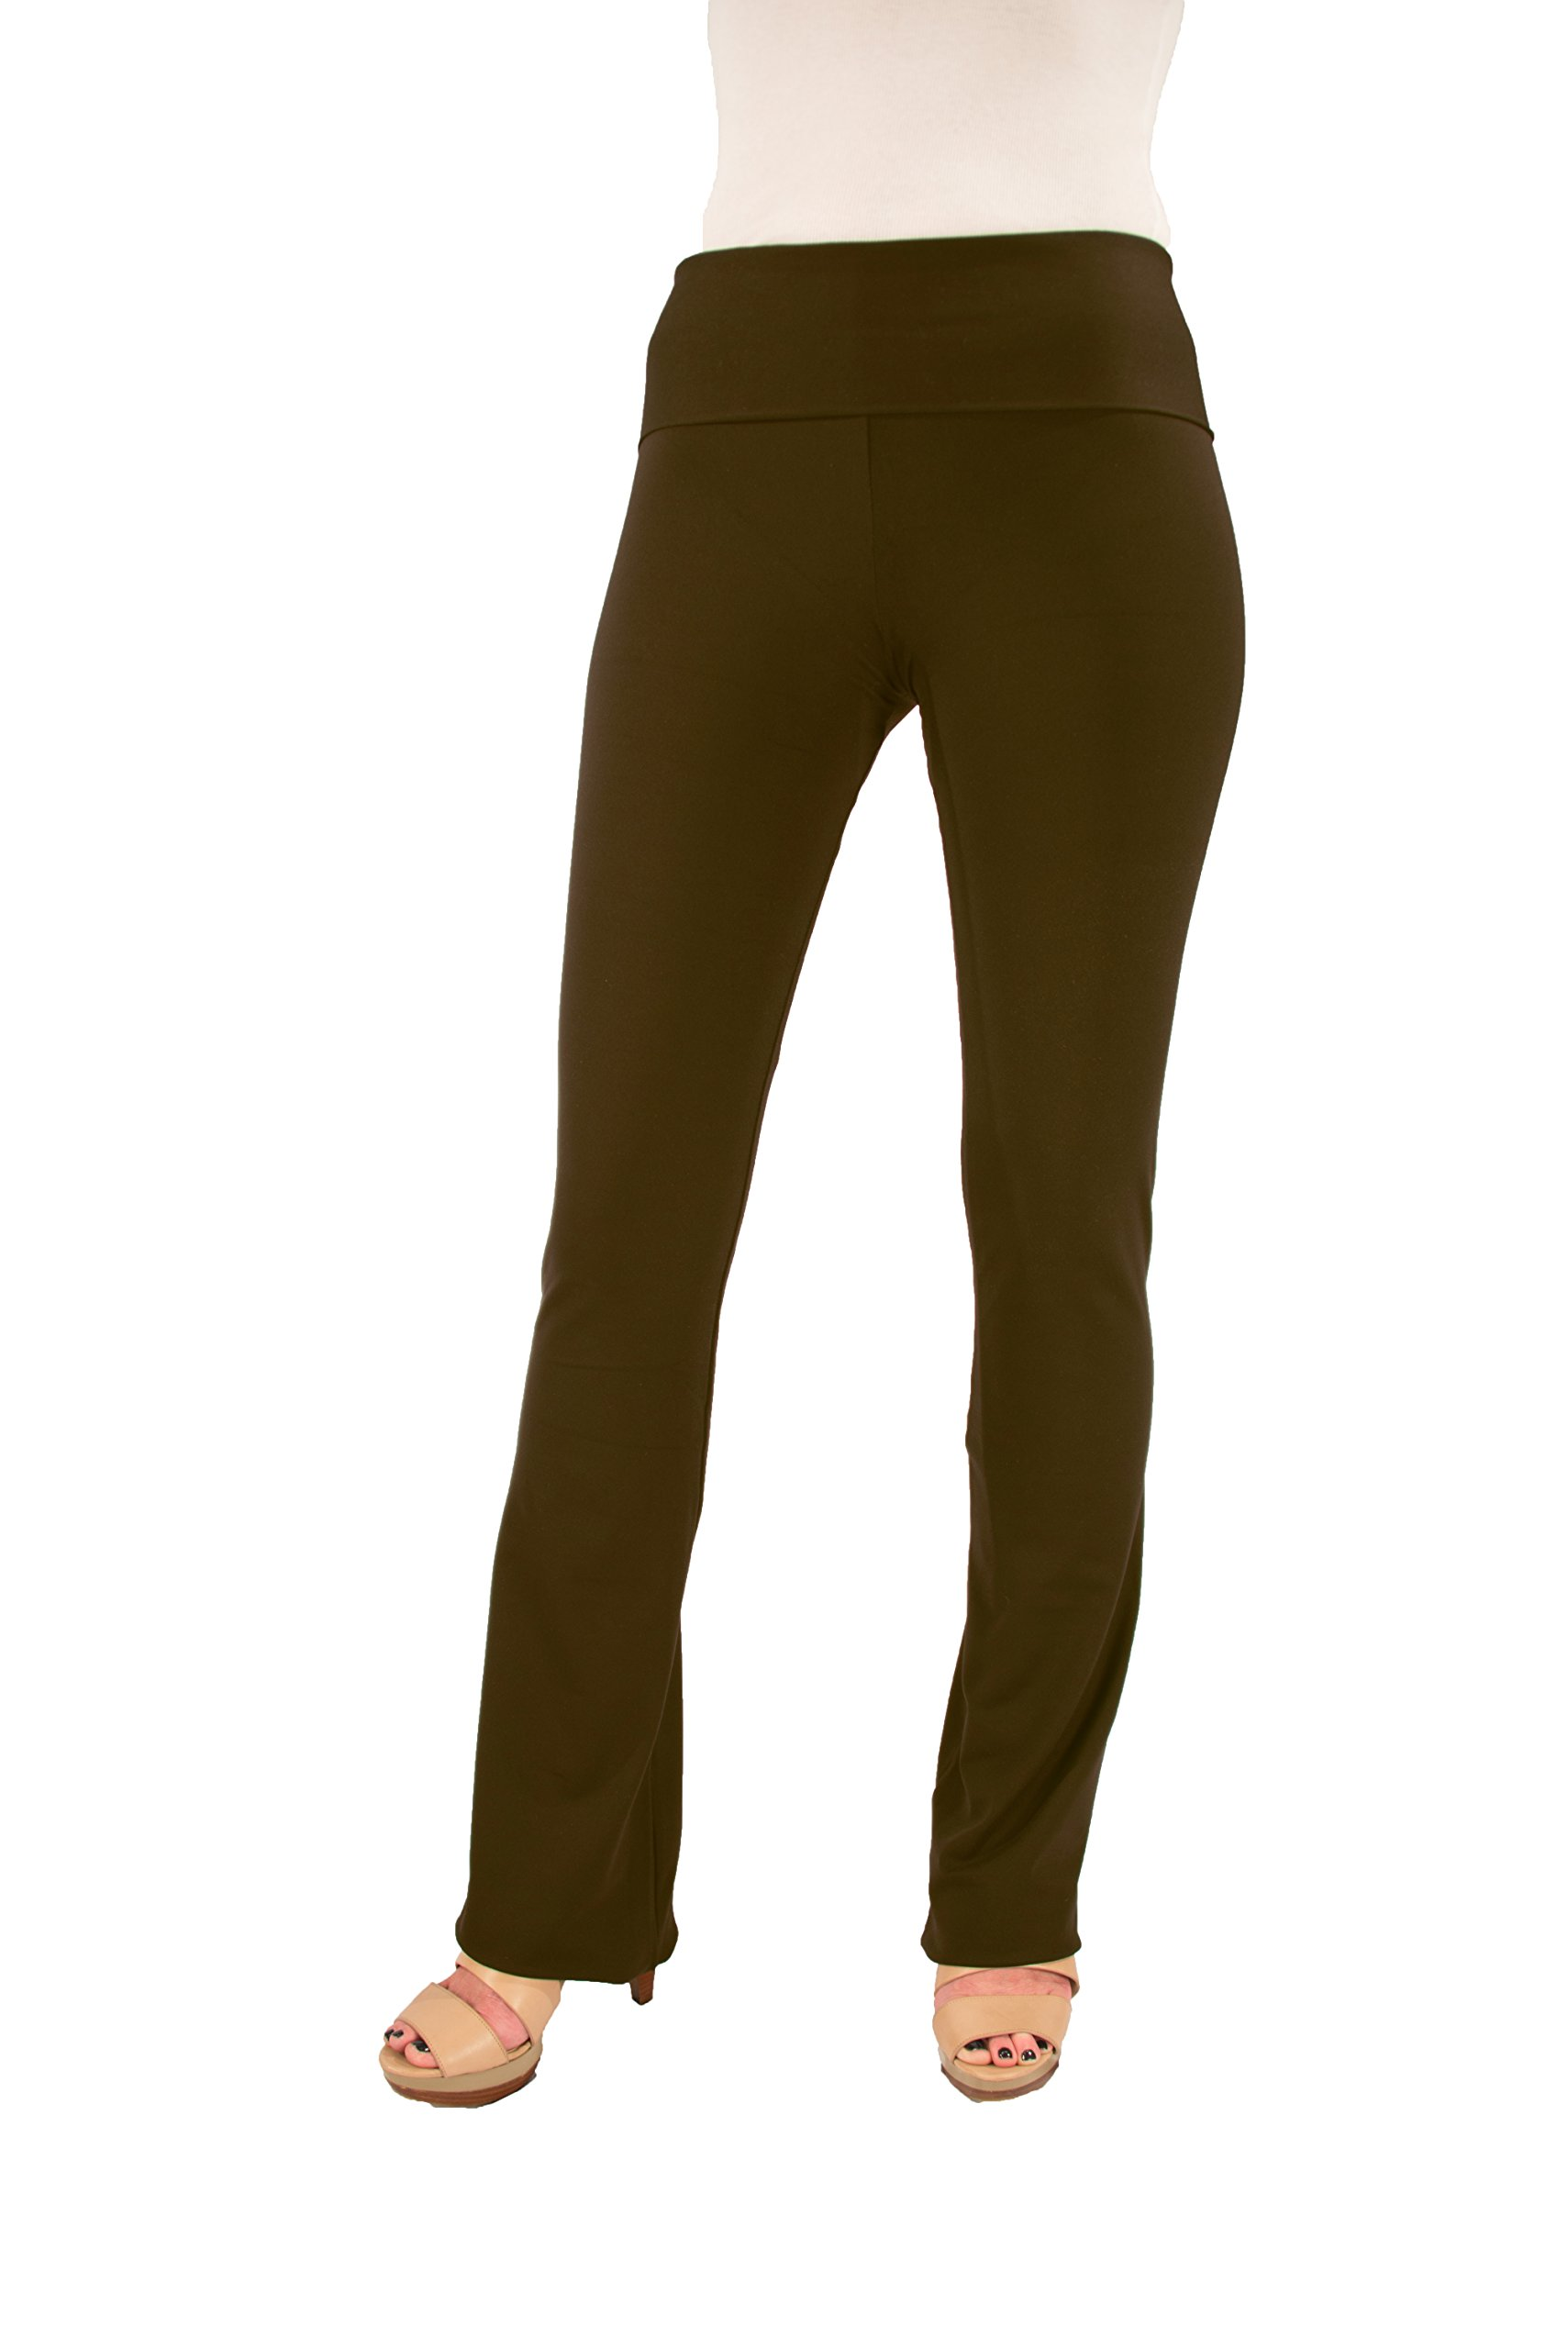 Hold Your Haunches ''As Seen on Shark Tank'' Women's Booty Patootie Bootcut Pants (2X-Large) -Brown- 32'' Inseam